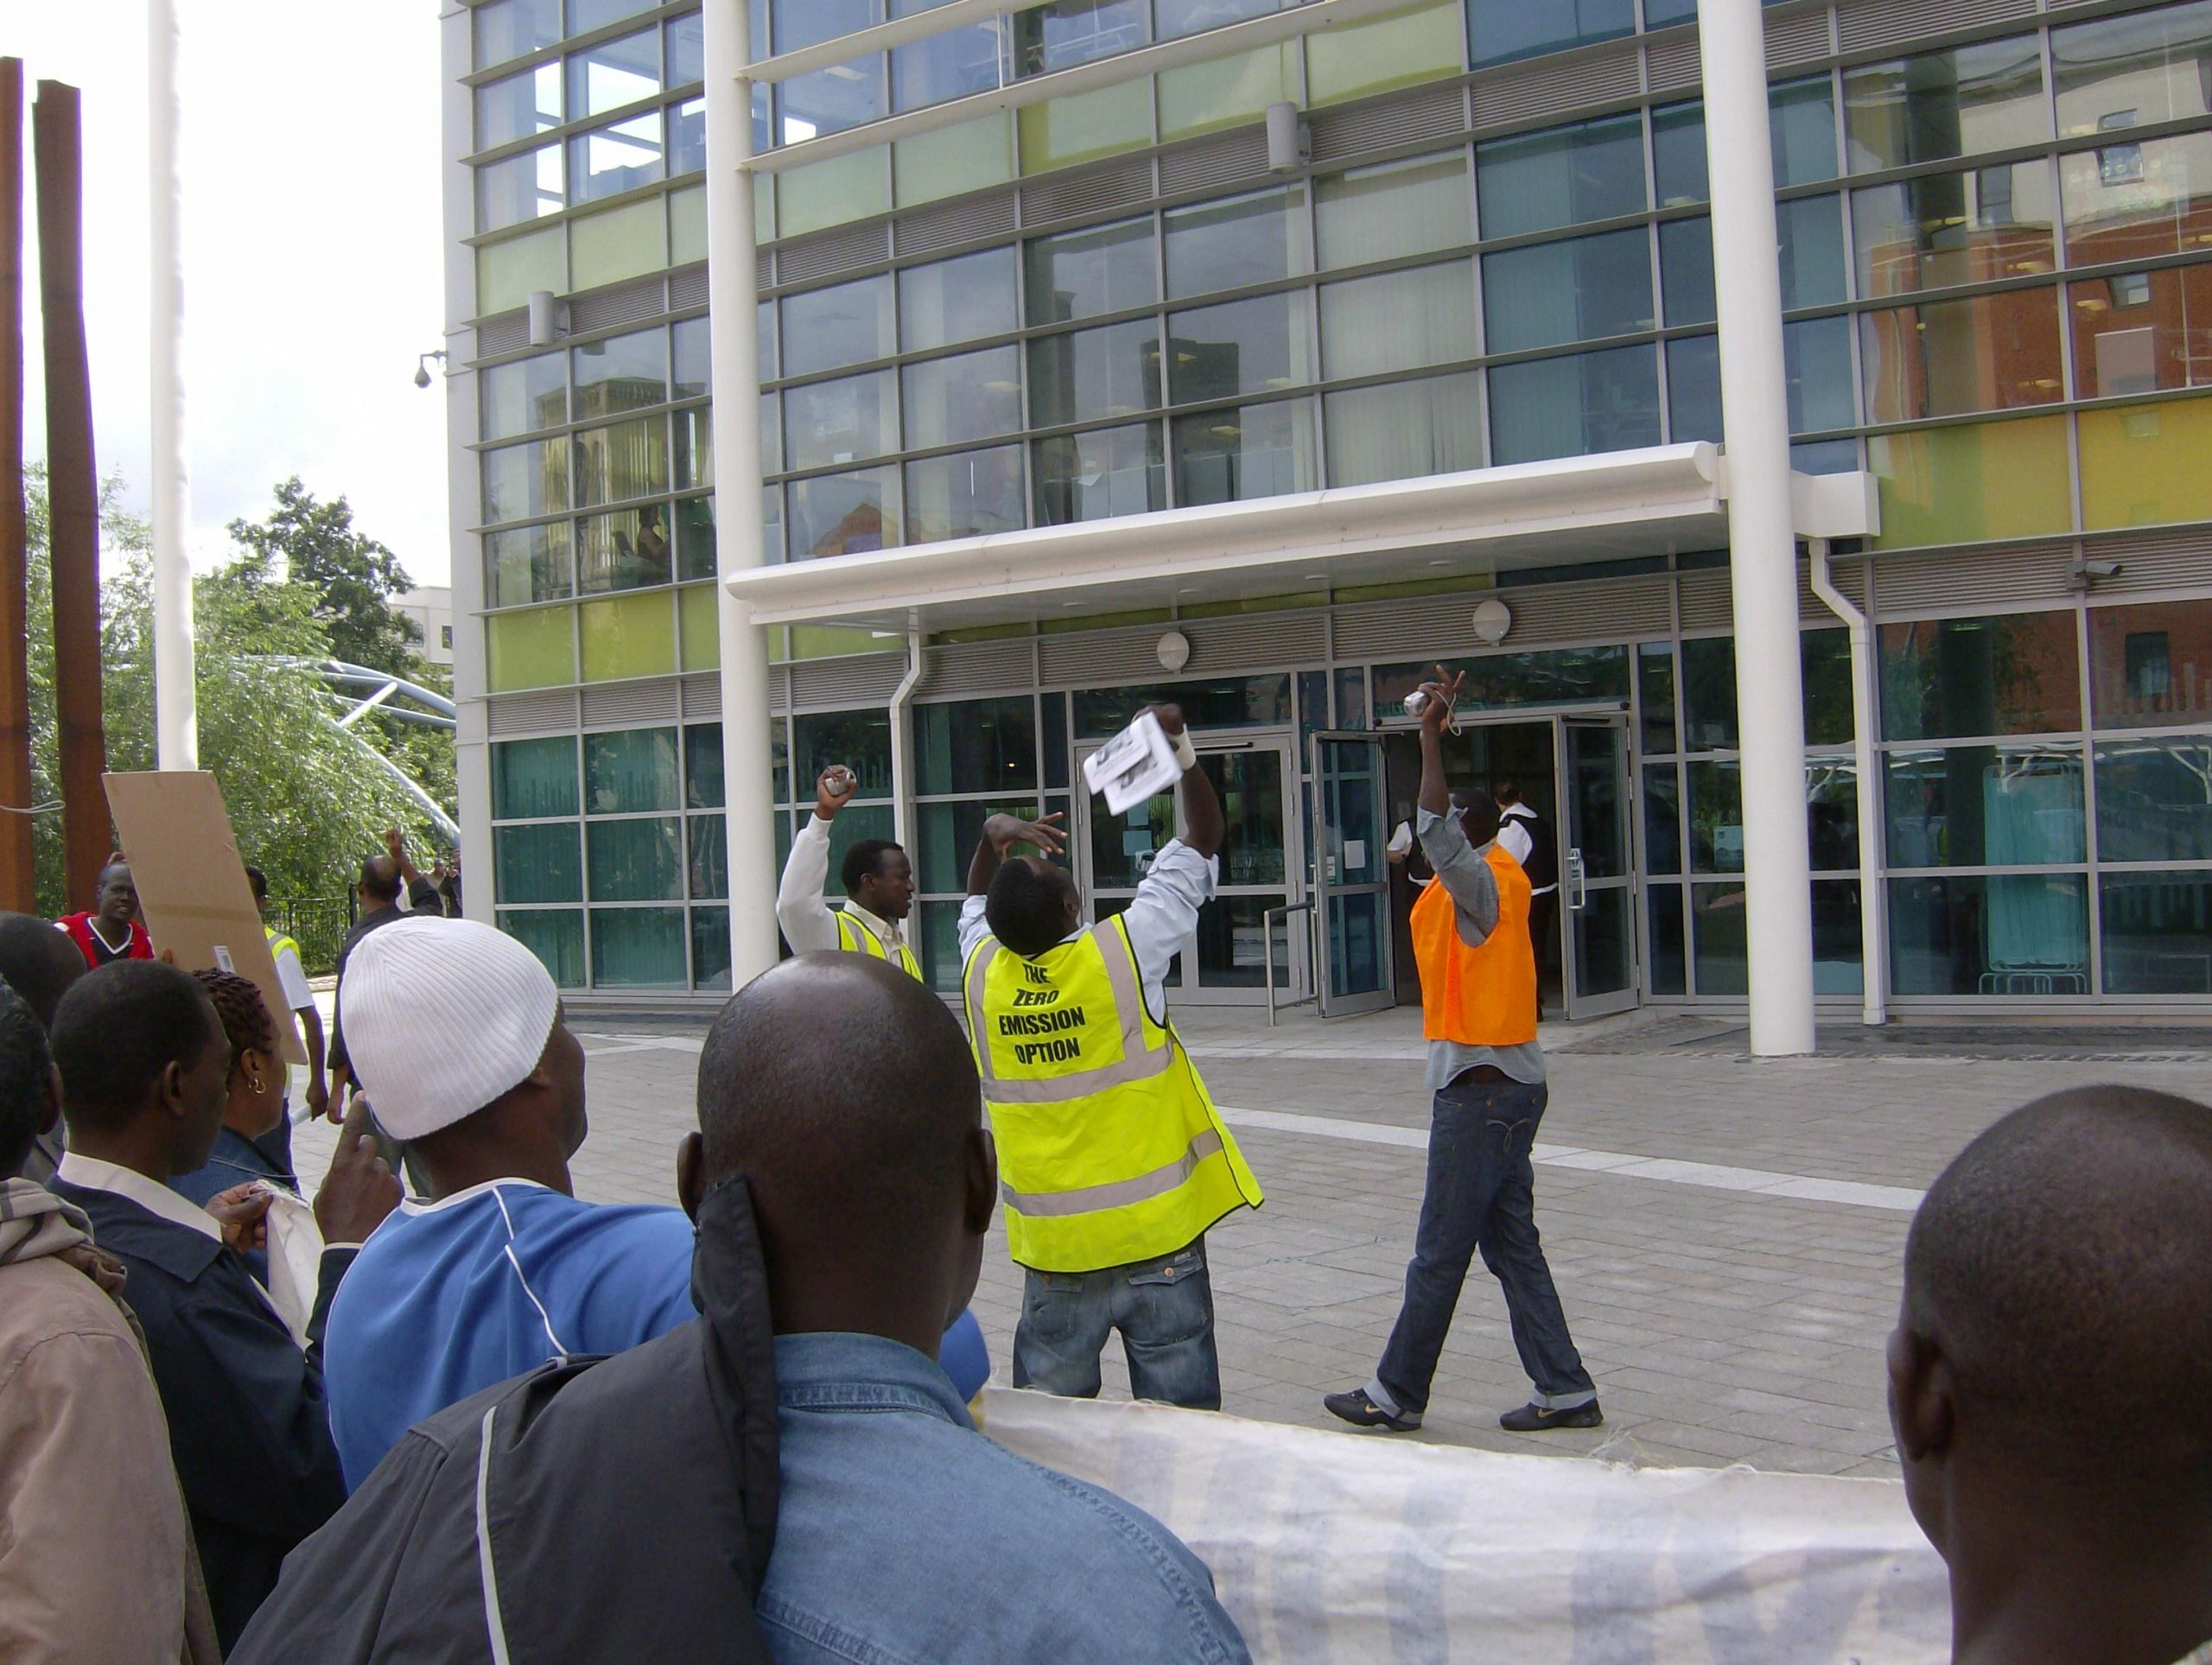 August 2008: South Yorkshire Sudanese community demonstrating outside Vulcan Hose for the right to work and to be treated respectfully. We soon discovered the newly built glass and steel Home Office HQ and surroundings had excellent acoustics.